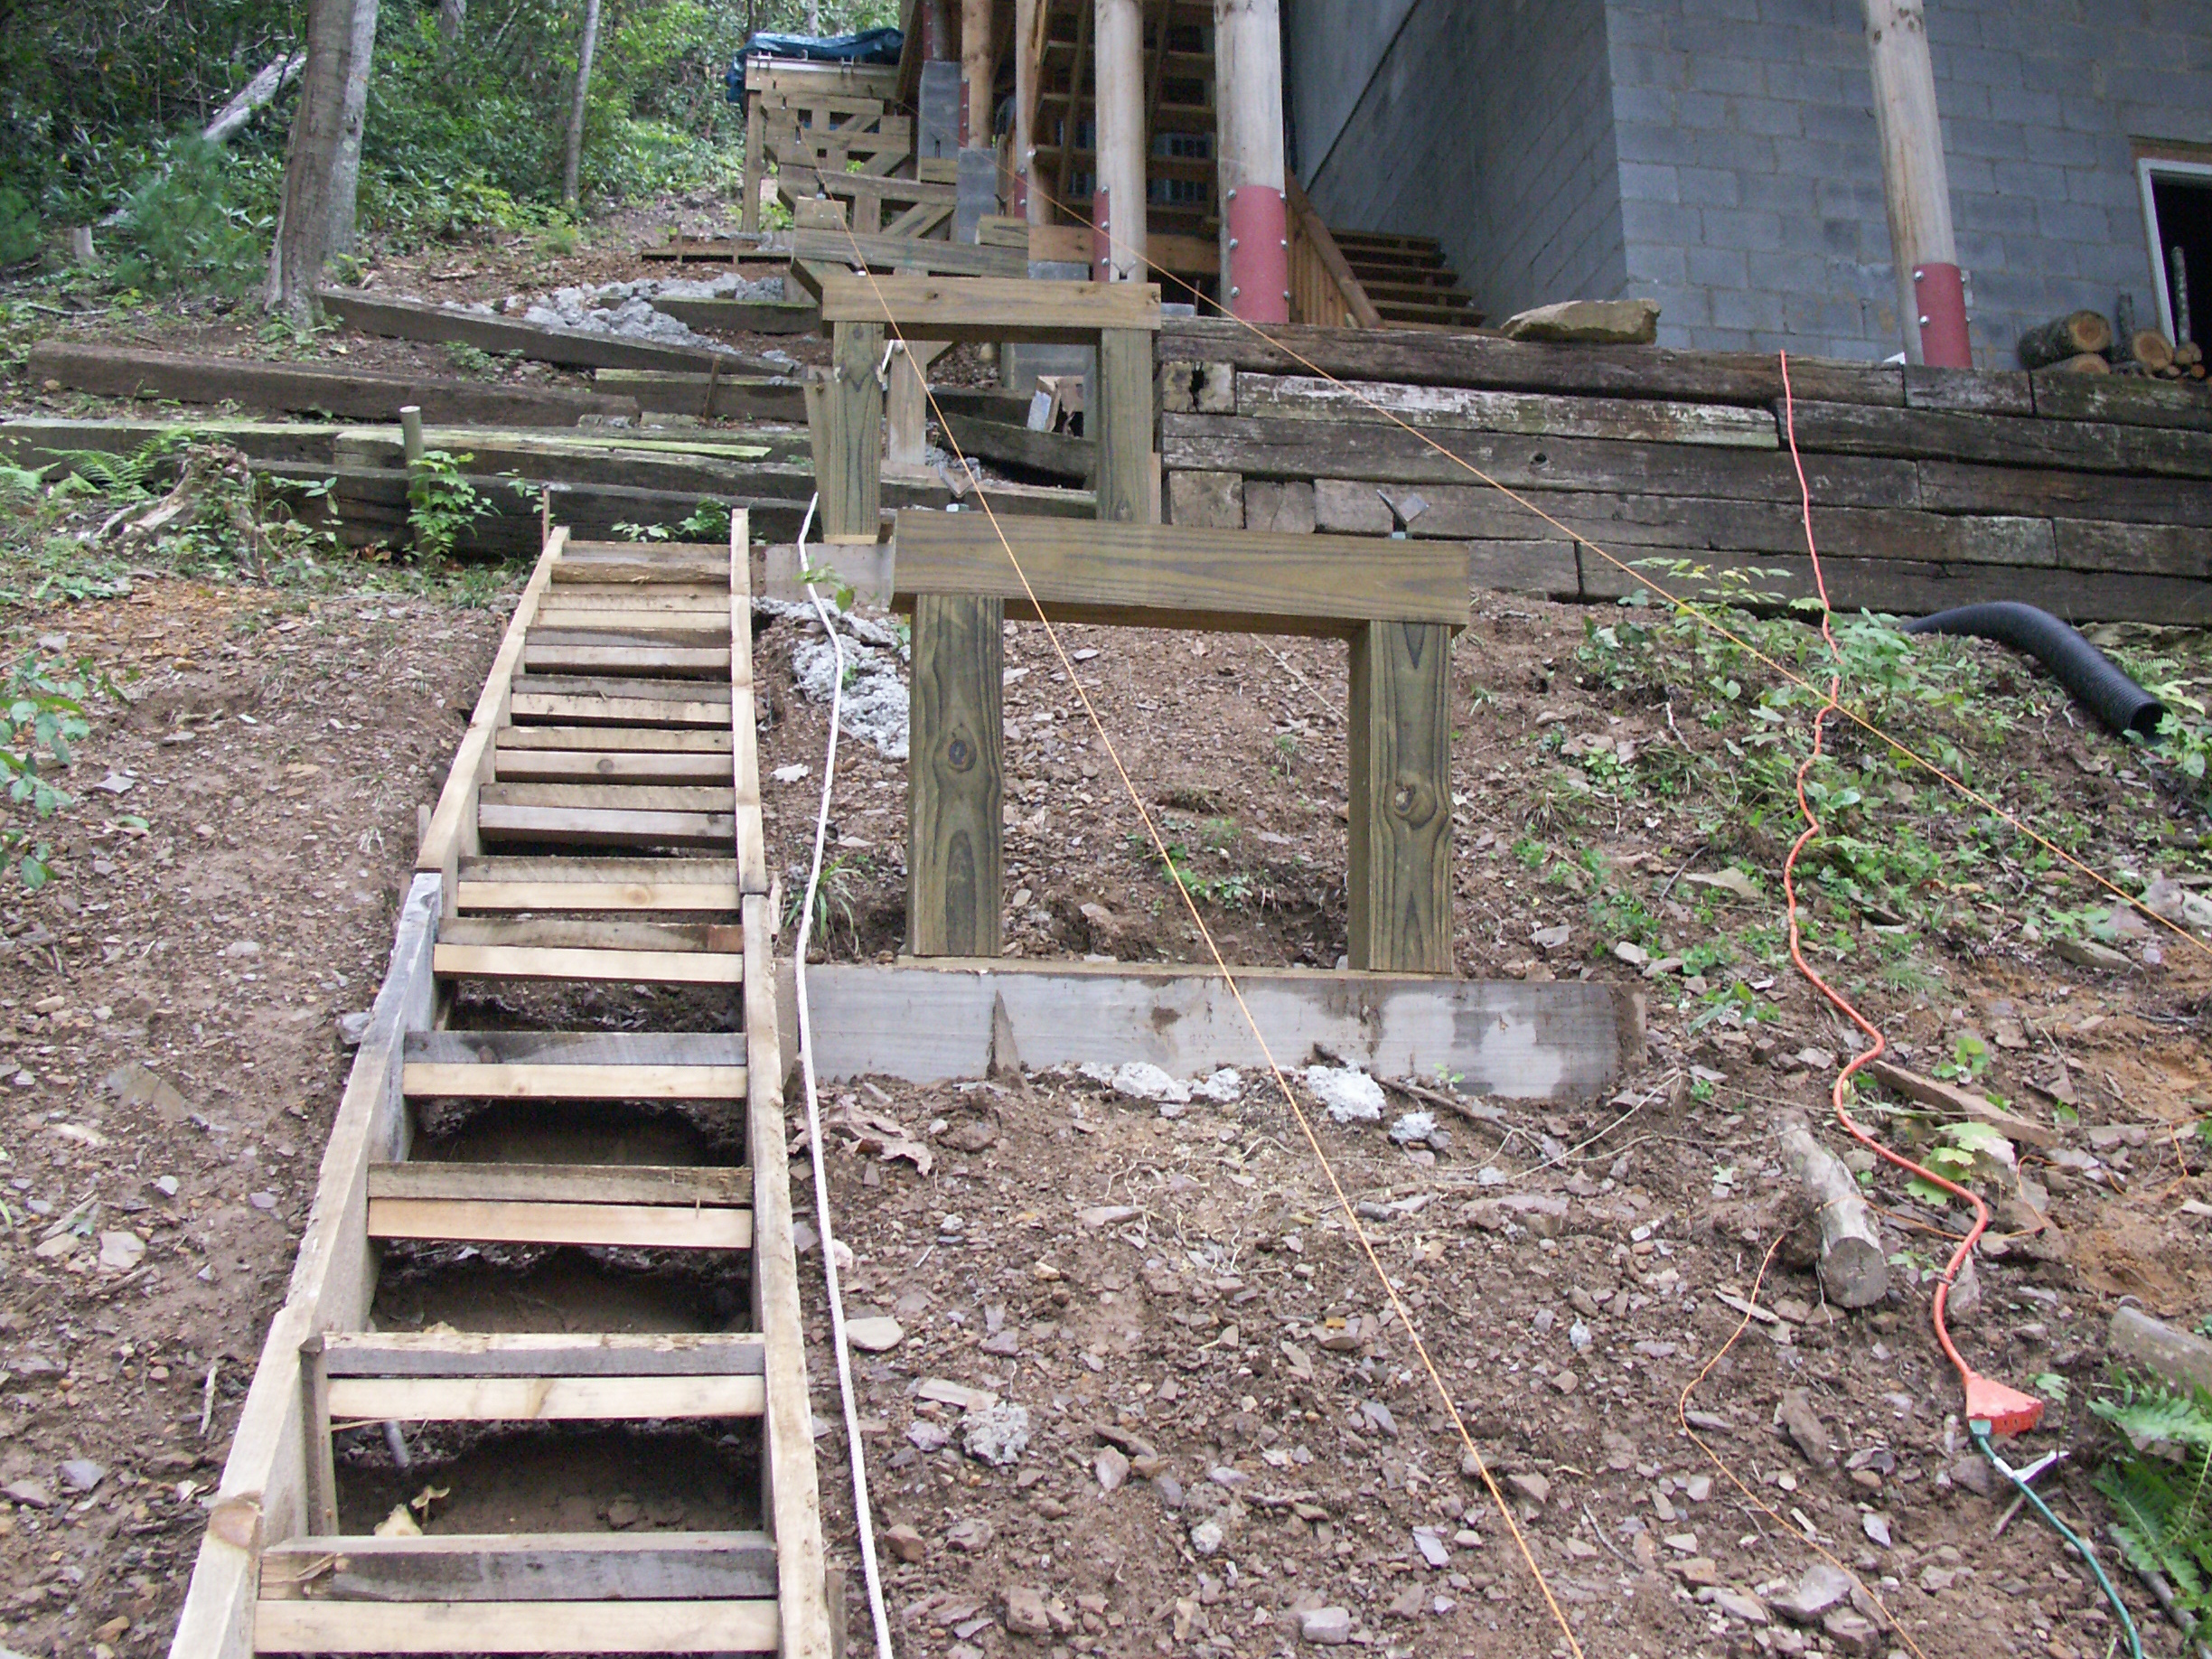 New Project: Home-Built Funicular (Motorized People-Mover System)